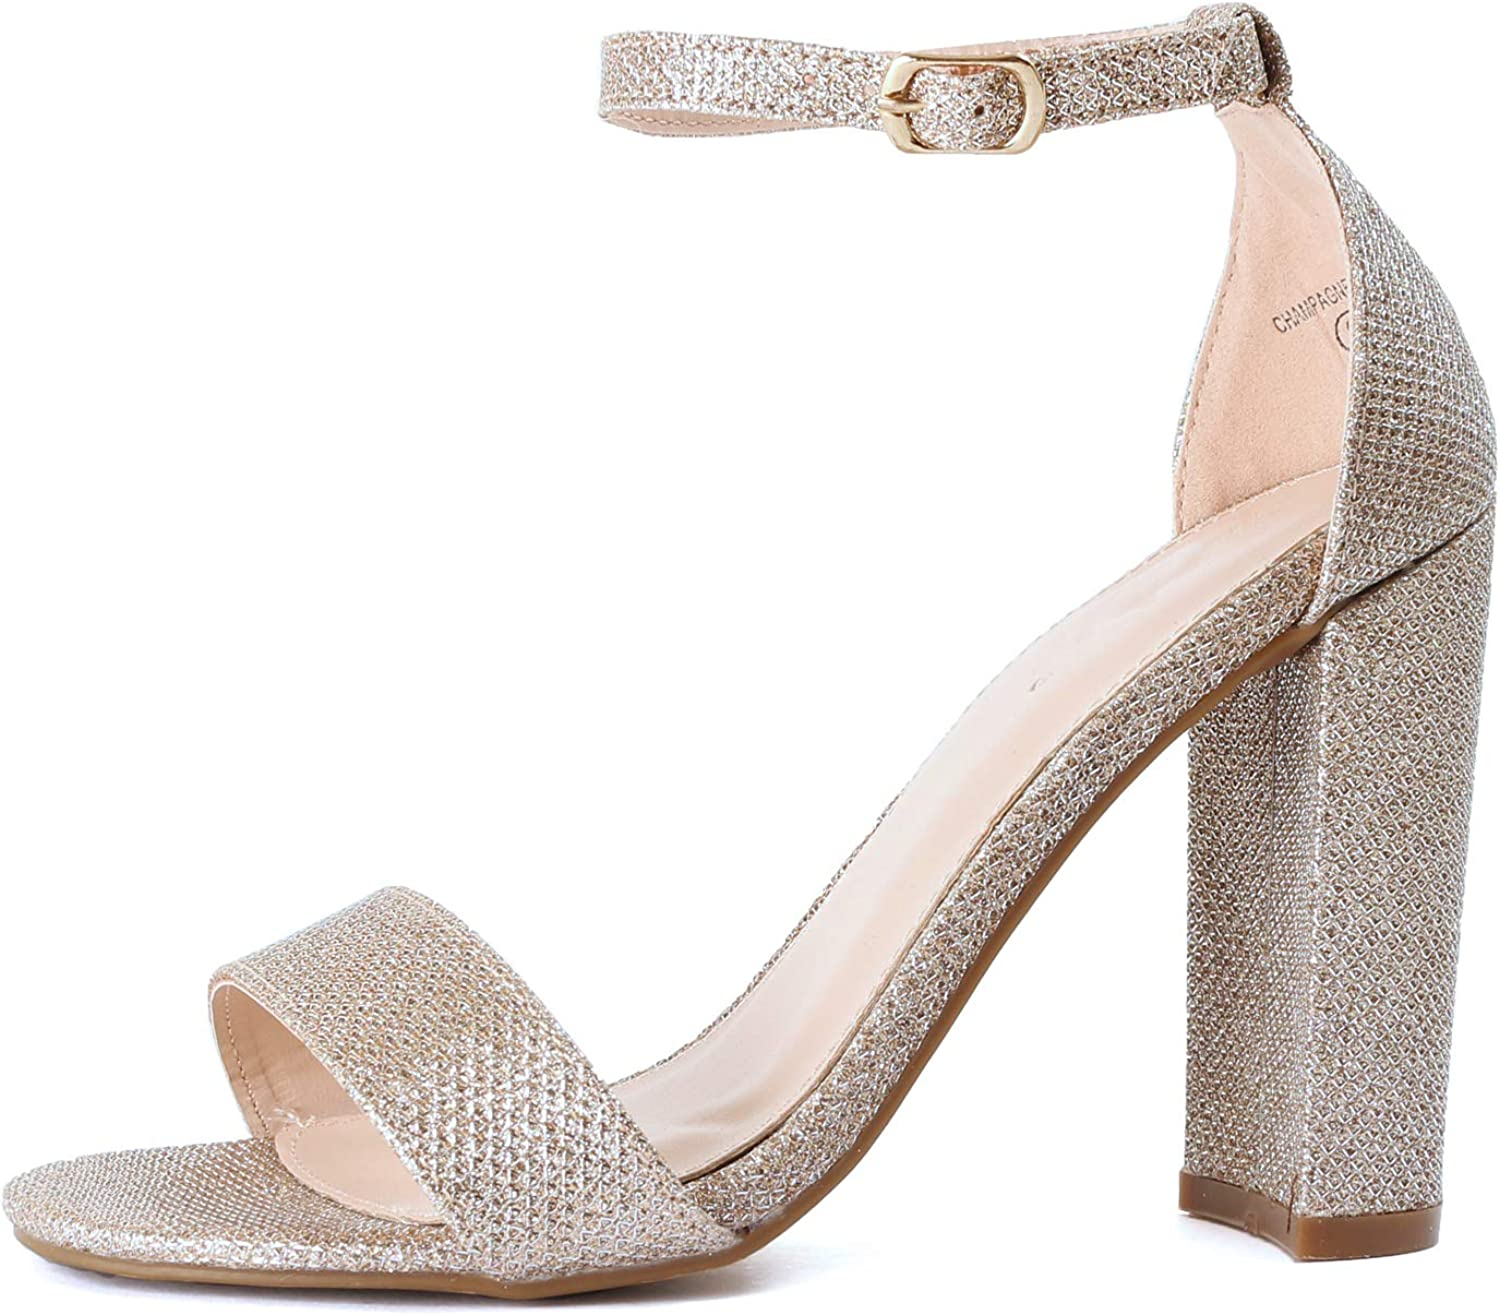 Guilty shoes Guilty Heart   Womens Comfort Open Toe Ankle Strap Chunky Block High Heel   Sexy Dress Formal Party Sandal